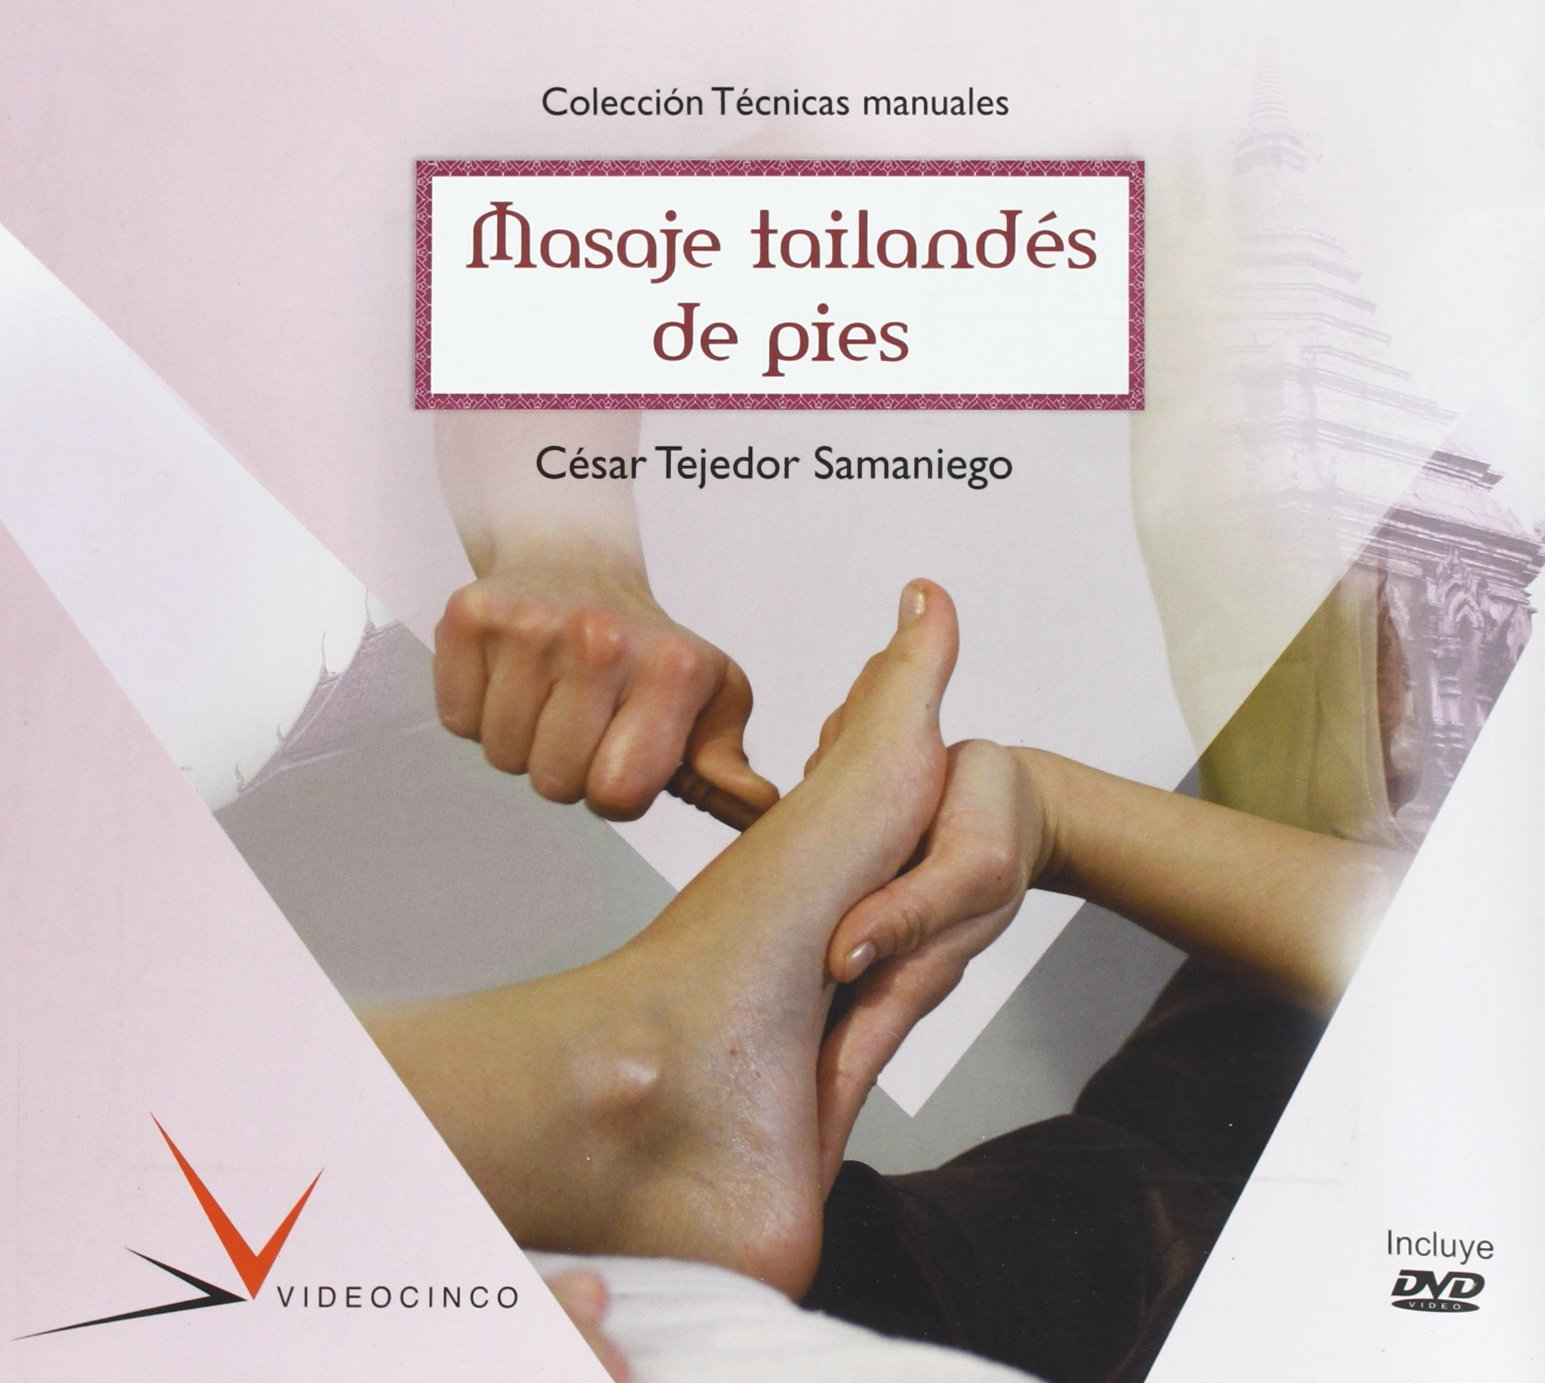 Masaje Tailandés de pies / Foot Thai Massage (Técnicas manuales / Manual Techniques) (Spanish Edition): Cesar Tejedor Samaniego: 9788487190957: Amazon.com: ...